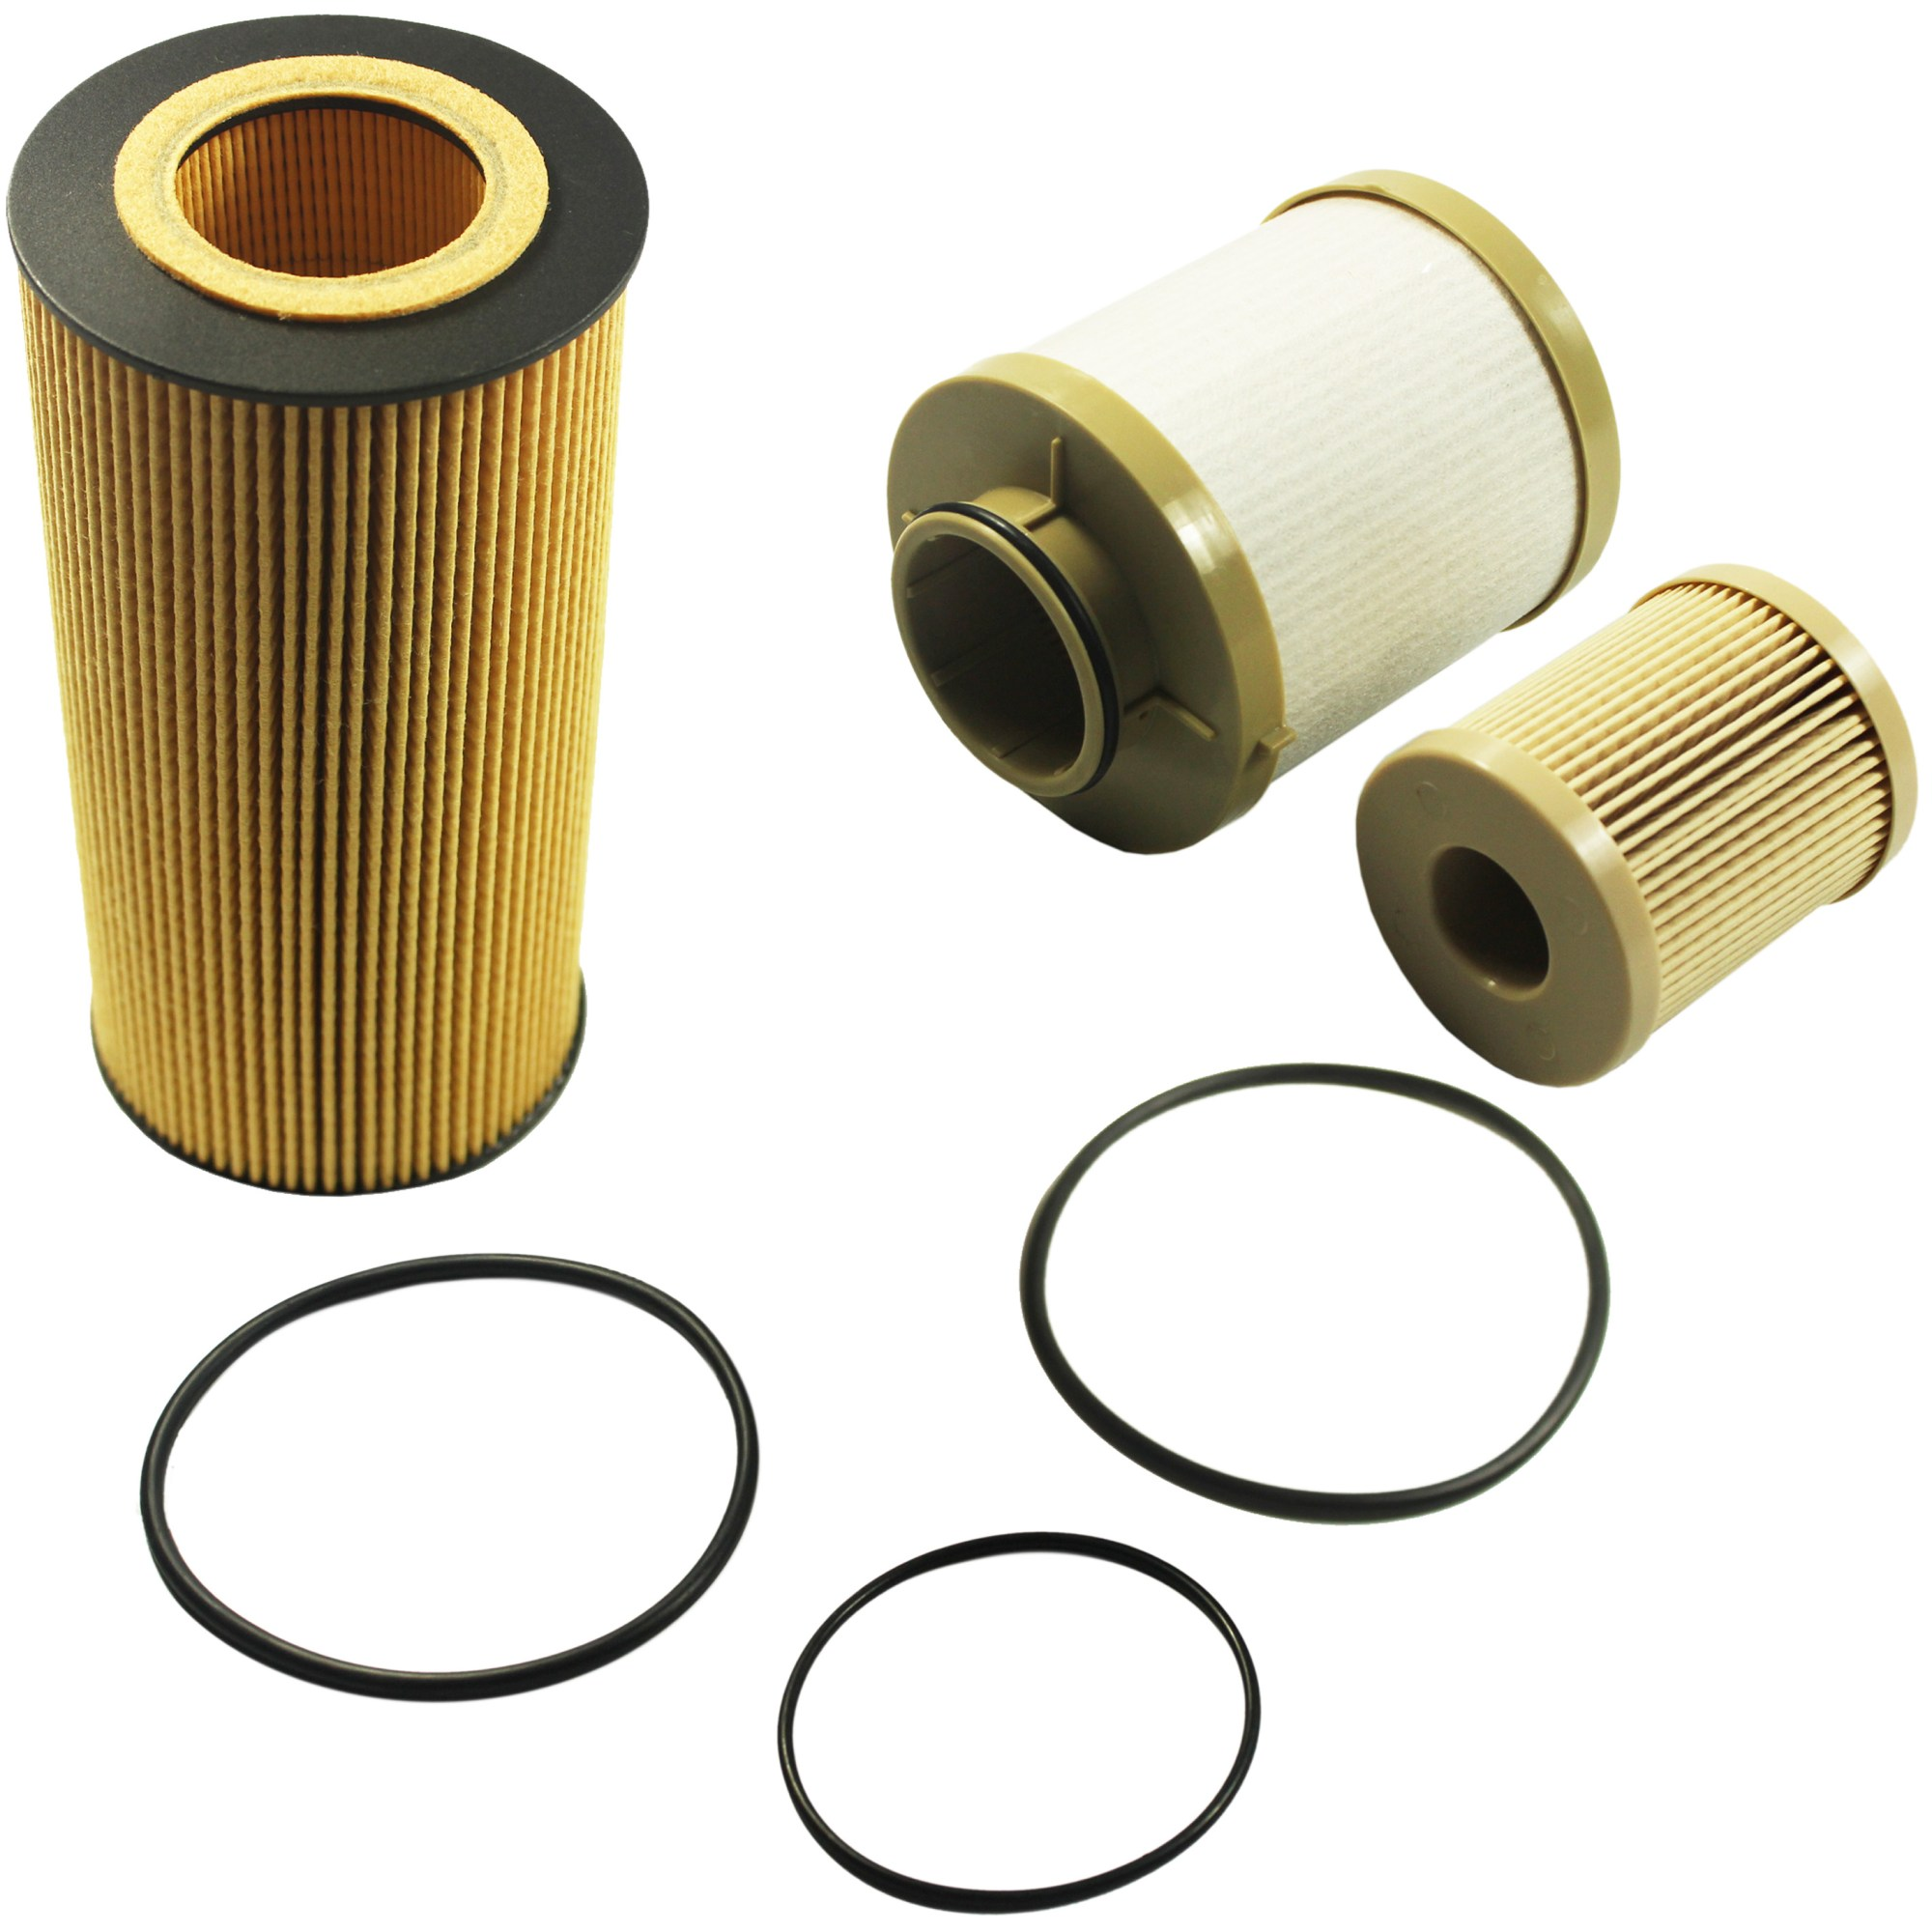 hight resolution of details about diesel oil filter fuel filter 03 07 ford powerstroke 6 0l fl2016 fd4604 fd4616